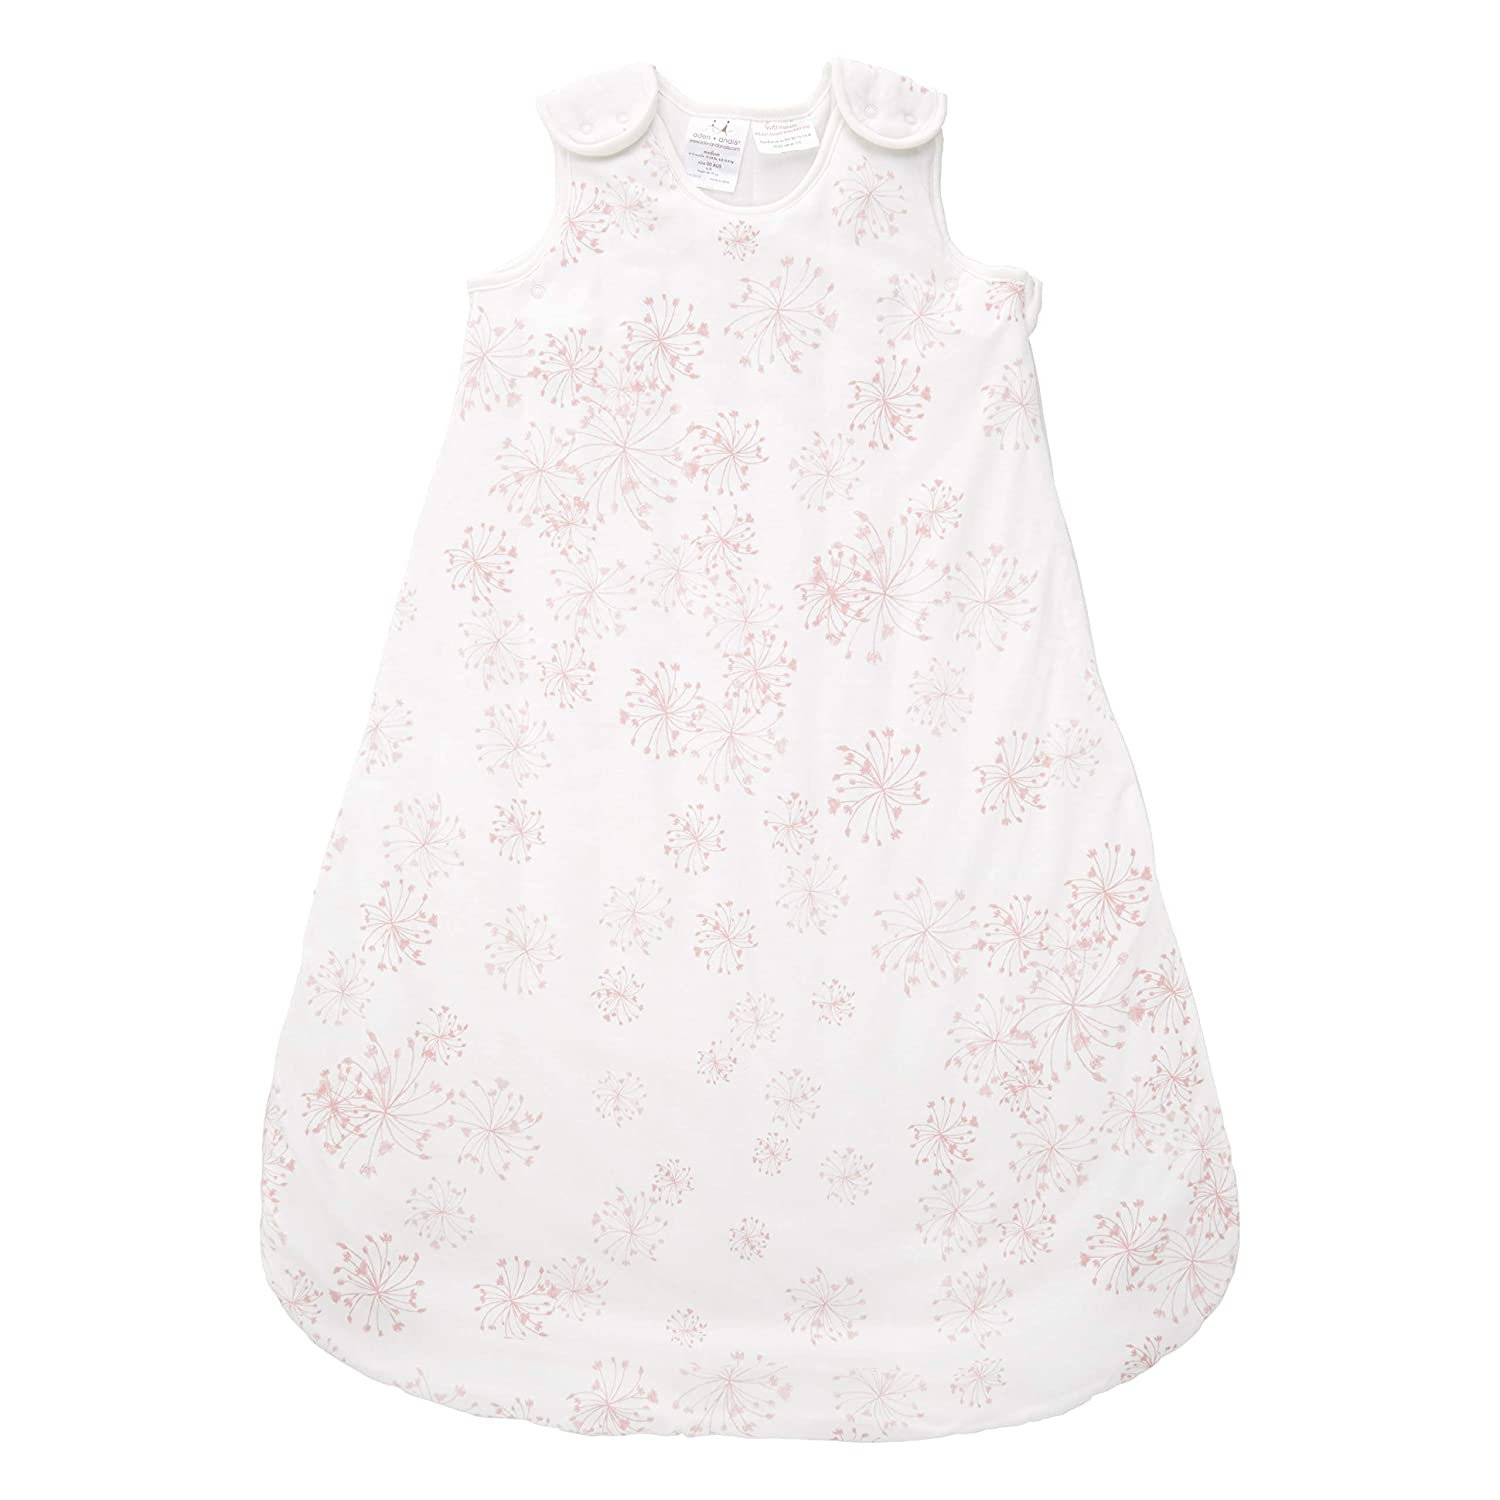 Amazon.com: aden + anais Winter Sleeping Bag - Lovely Reverie Dandelion - 6-18m: Baby